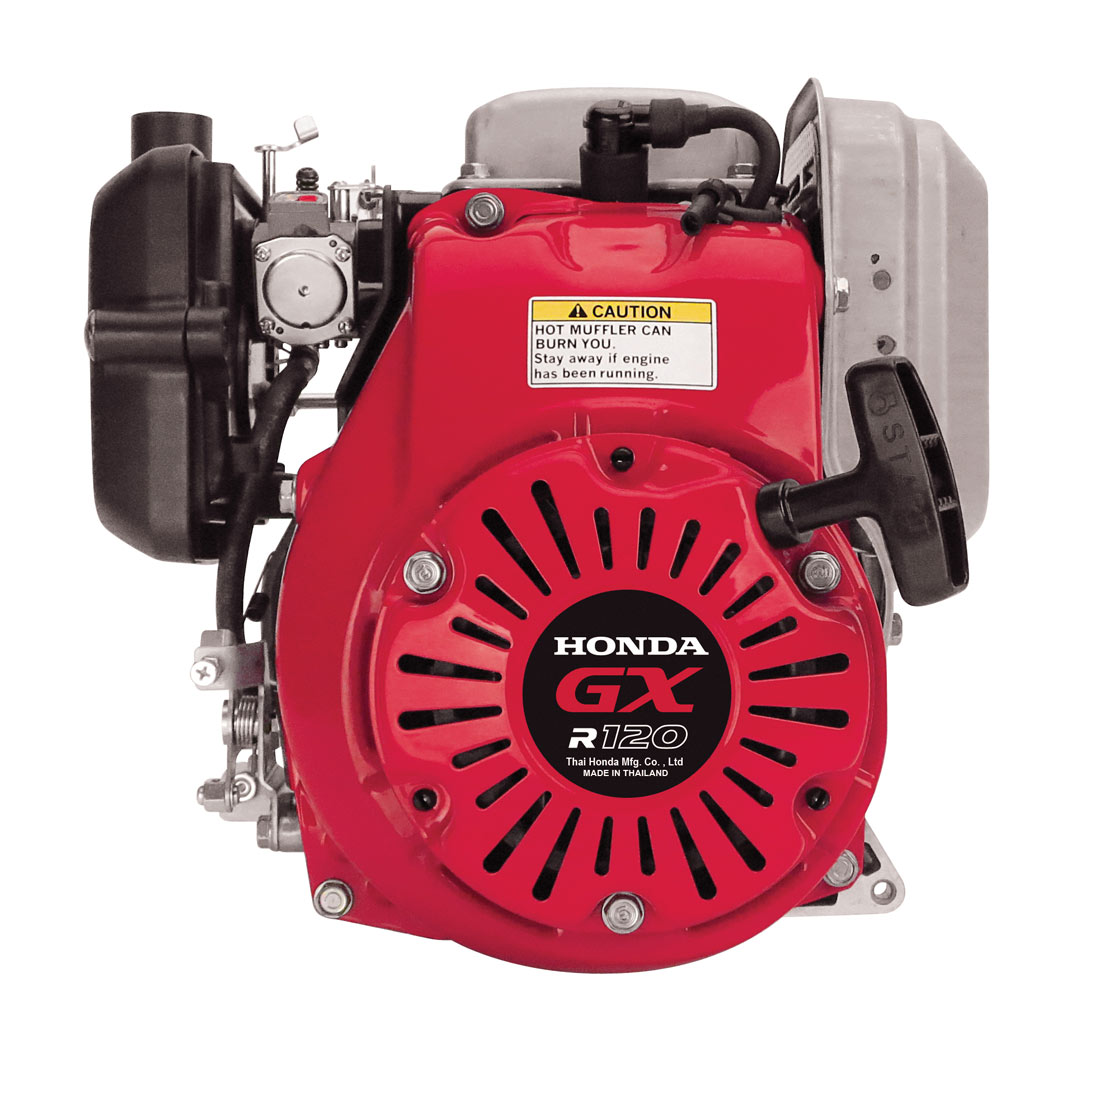 Honda Engines Gxr120 Rammer Engine Features Specs And Model Info Long Tractor Parts Diagrams